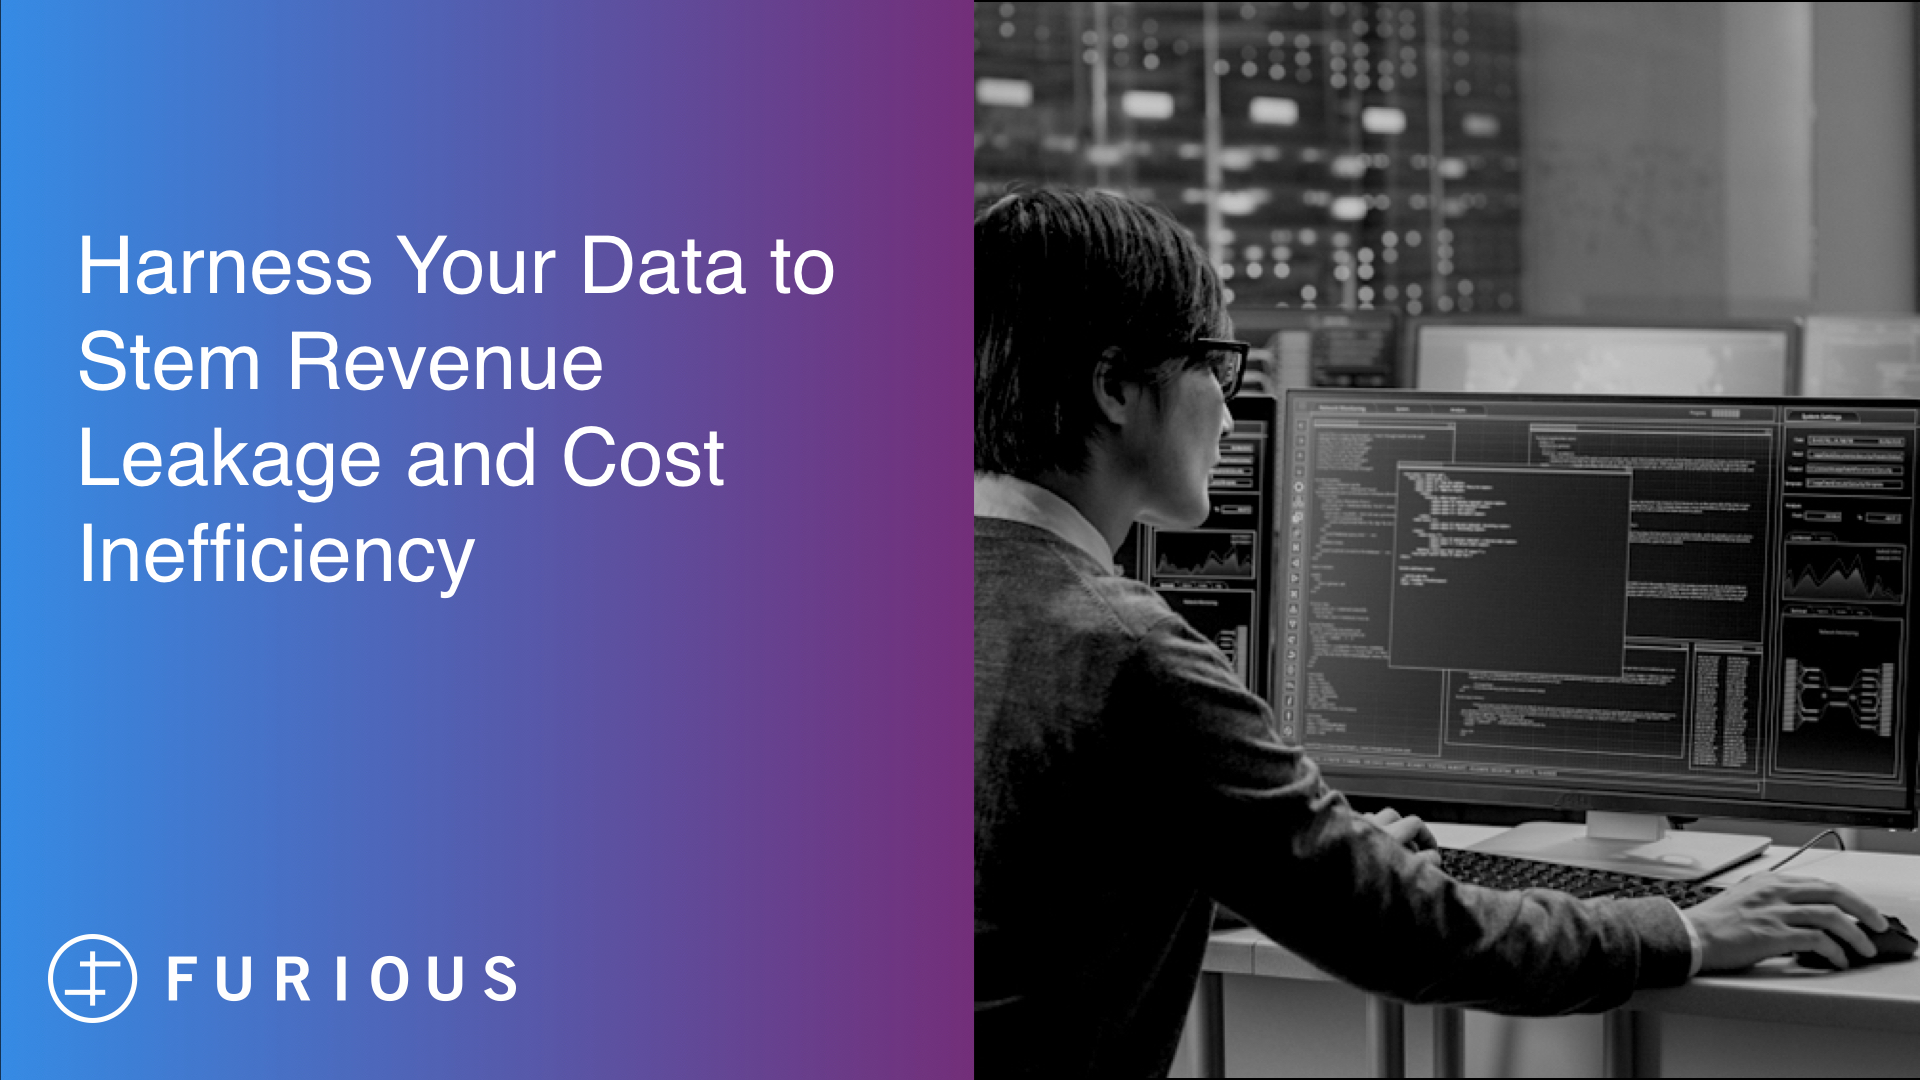 harness-your-data-to-stem-revenue.001